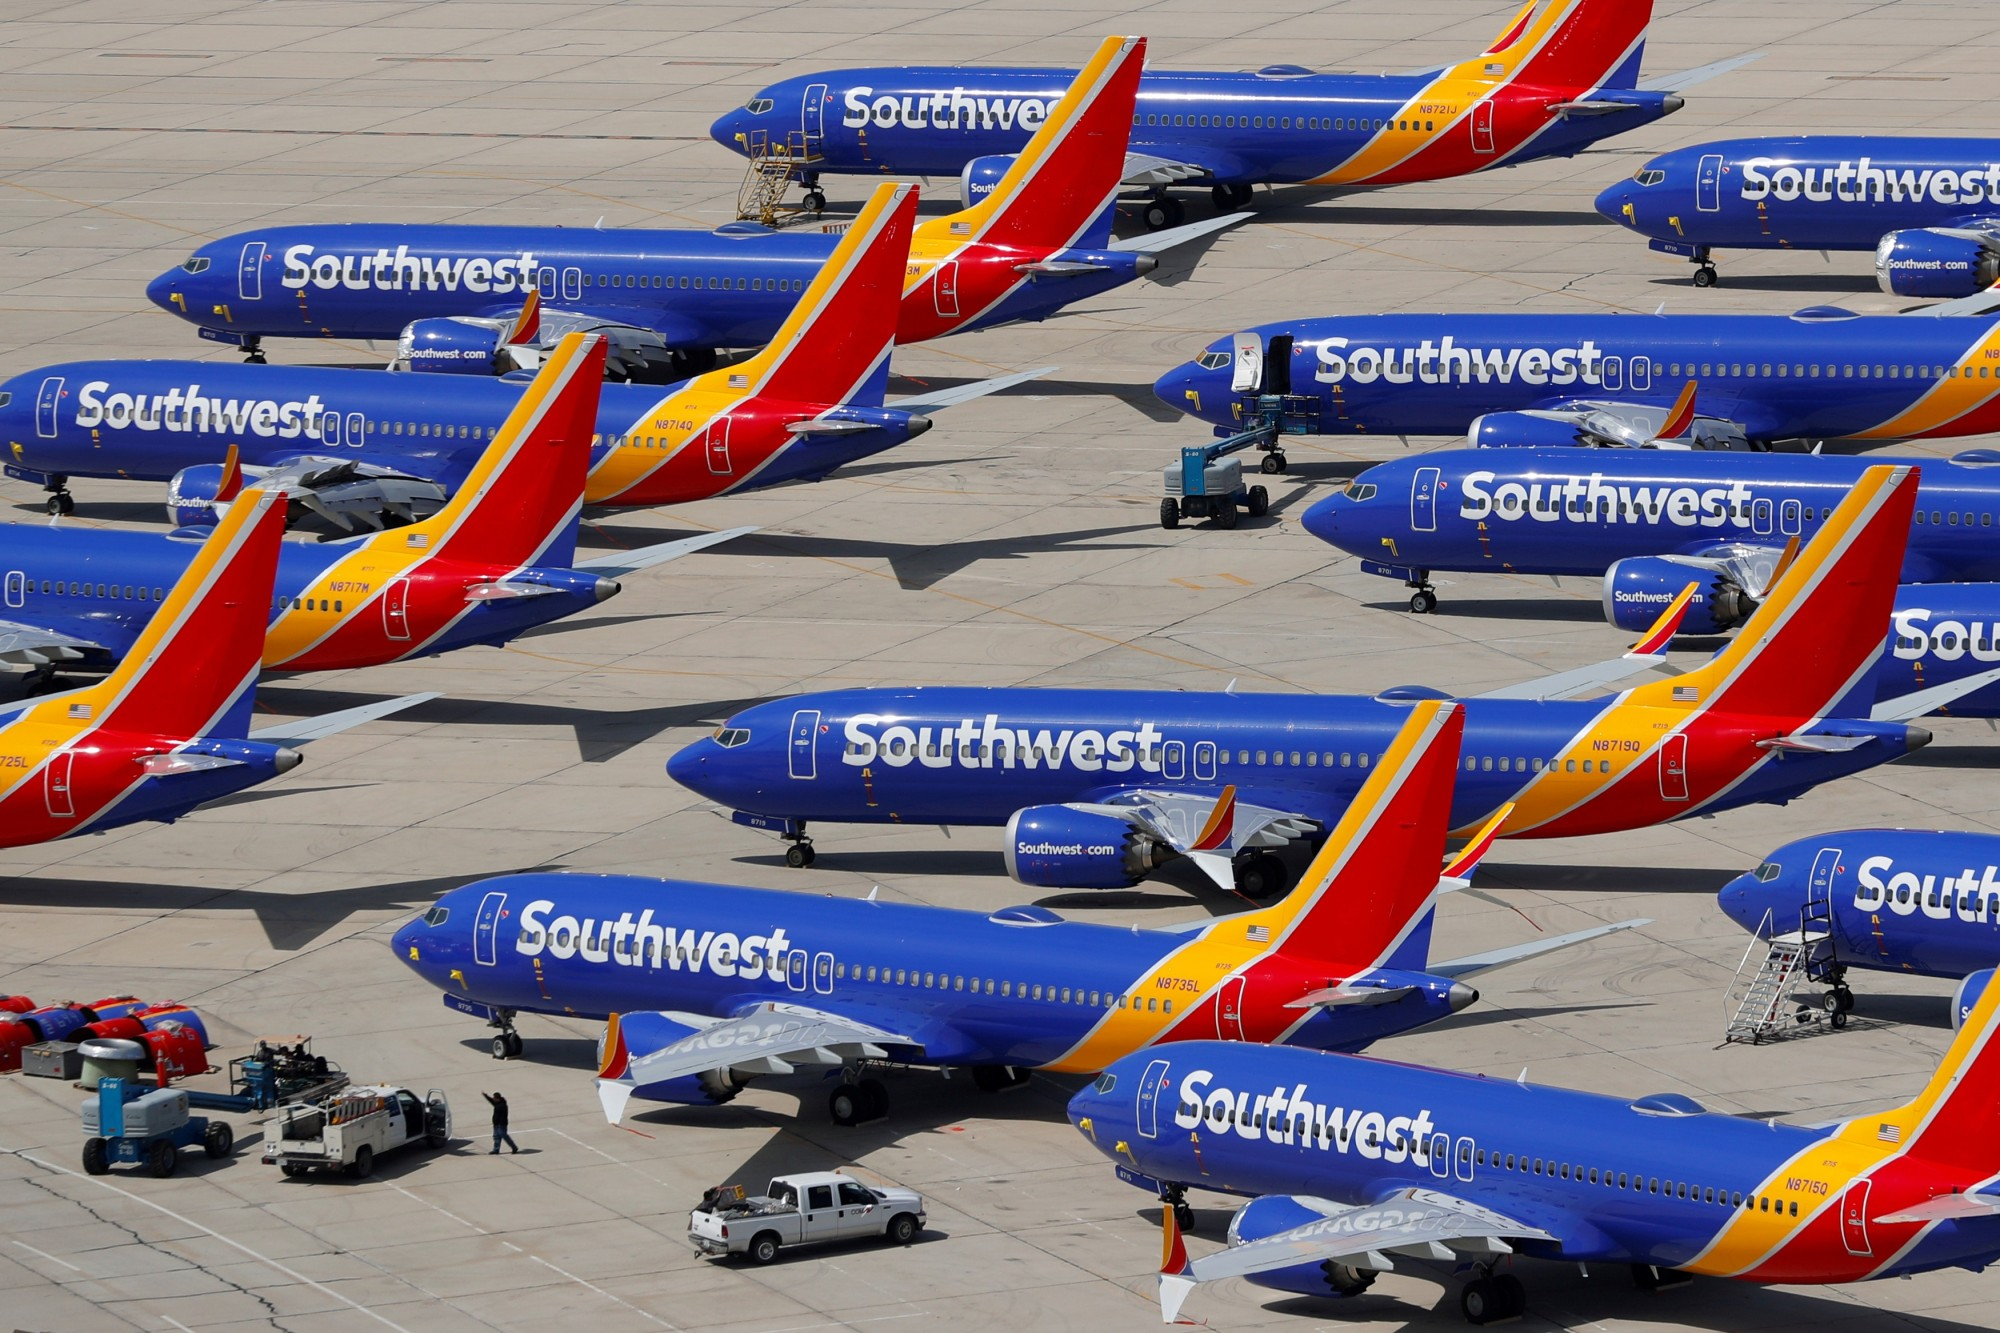 Grounded Southwest Airlines Boeing 737 Max 8 aircraft are shown parked at Victorville Airport in Victorville, California, March 26. | REUTERS